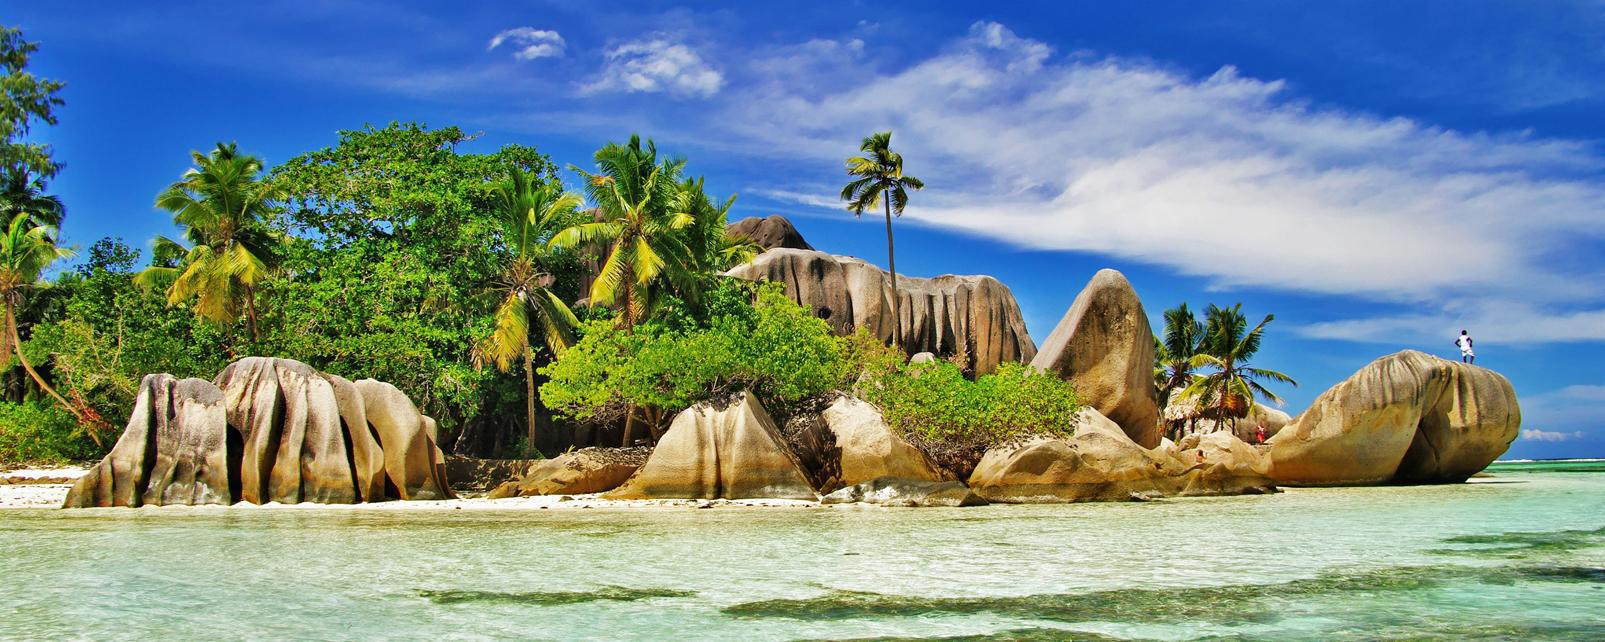 The Three Best Hotels in Seychelles to Stay at When You Expect to be Pampered